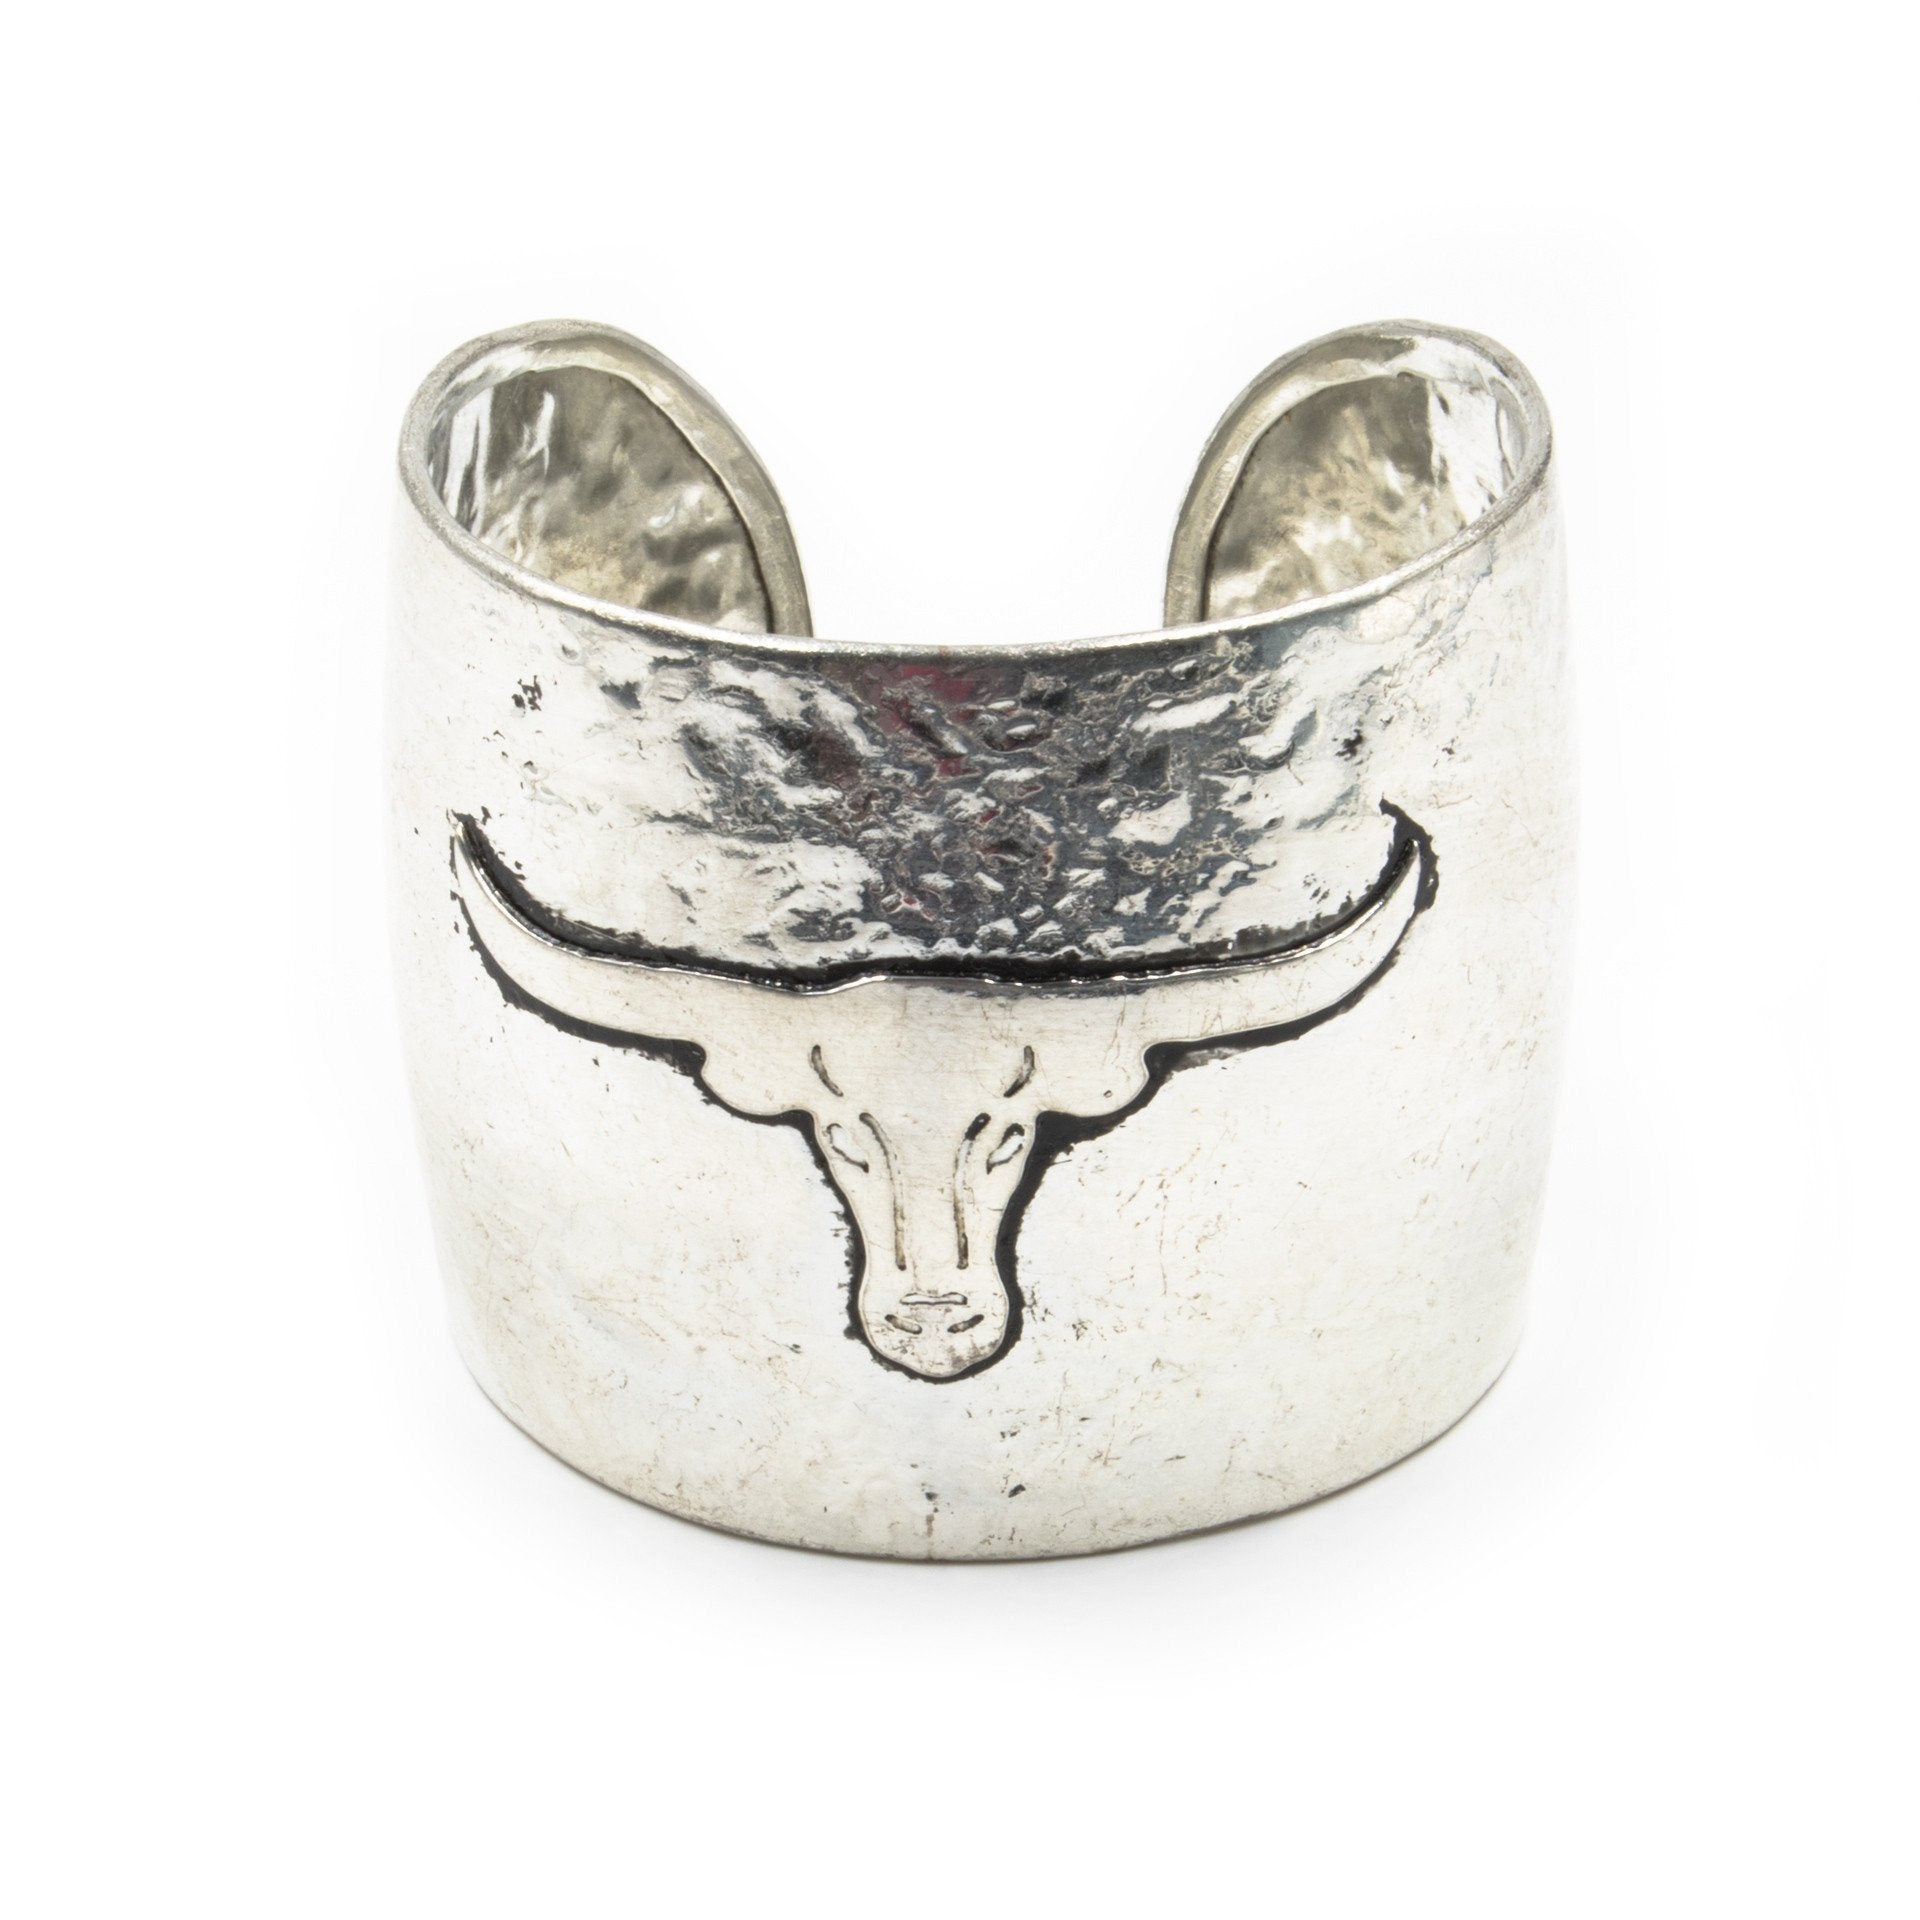 'Longhorn' Hammered Metal Cuff Bracelet - Arlo and Arrows